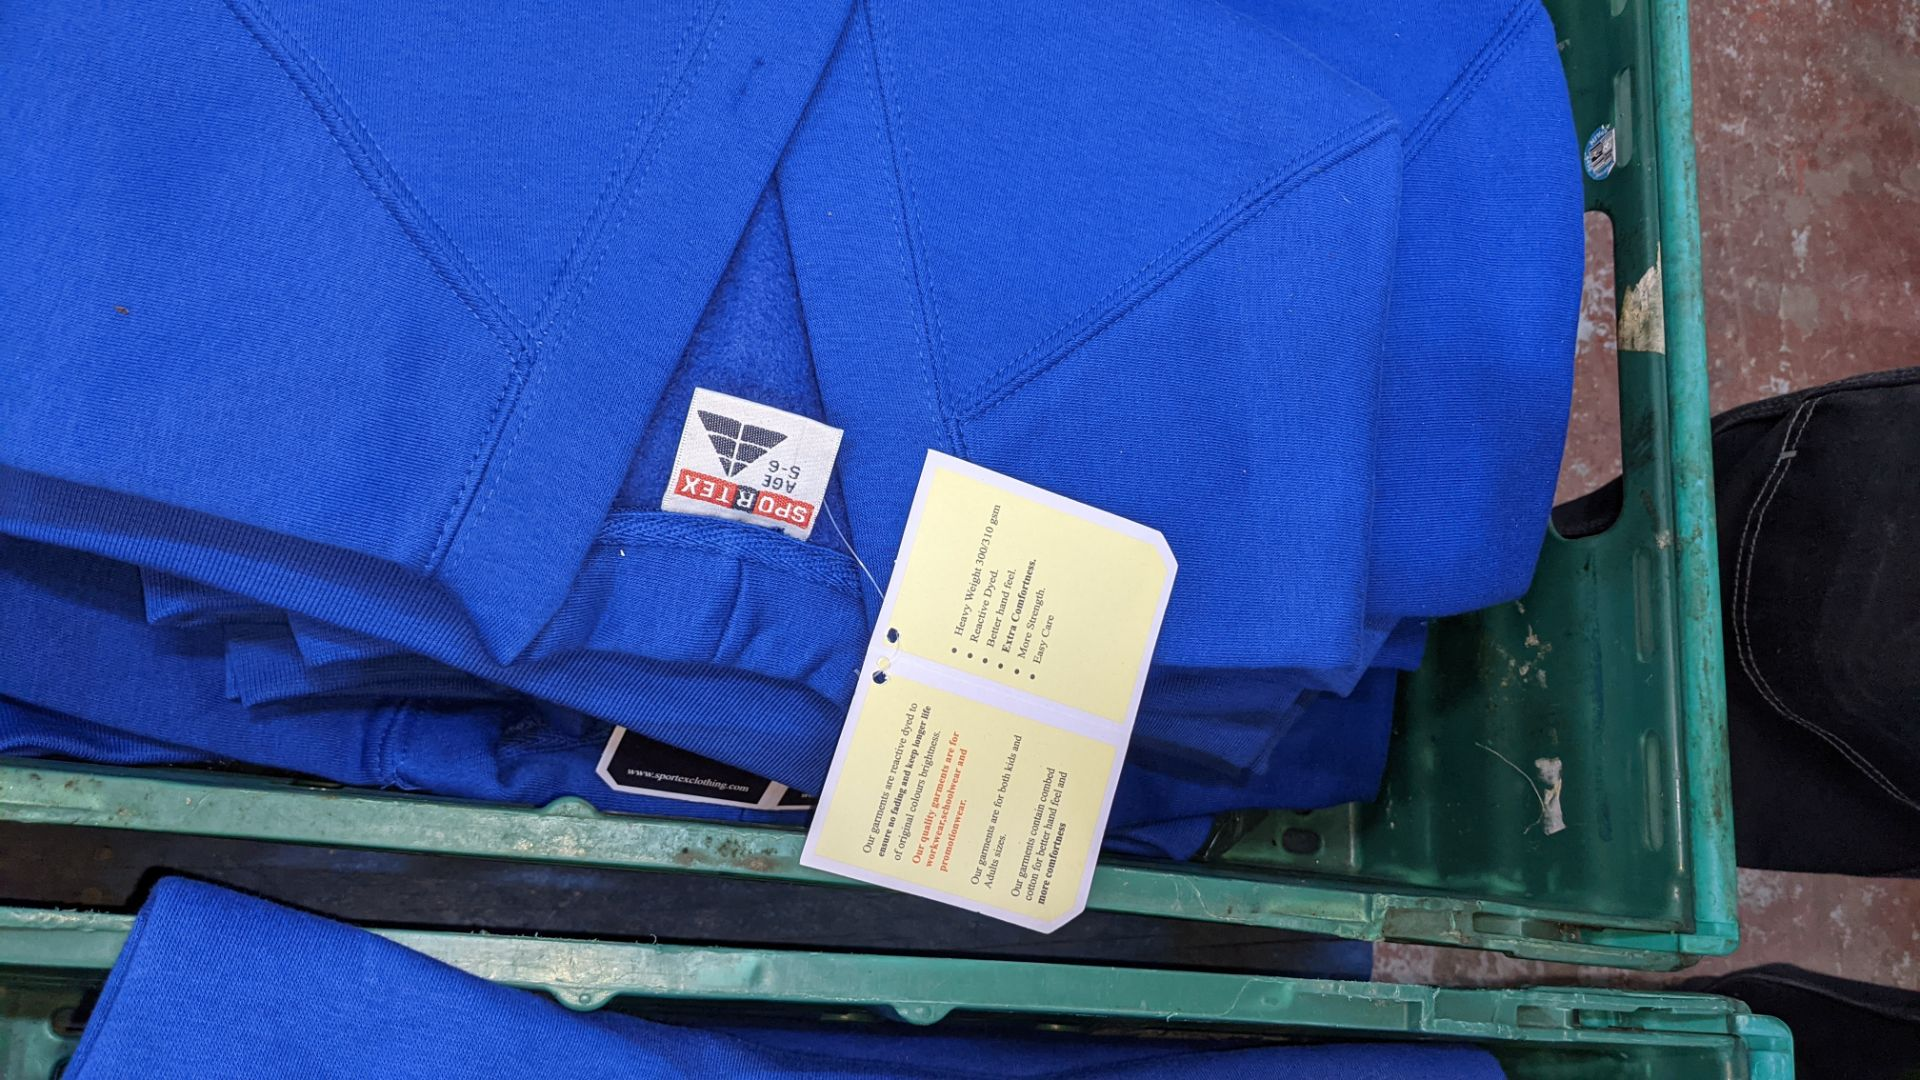 Approx 15 off Sportex children's assorted sweatshirts - the contents of 2 crates. NB crates exclude - Image 6 of 6